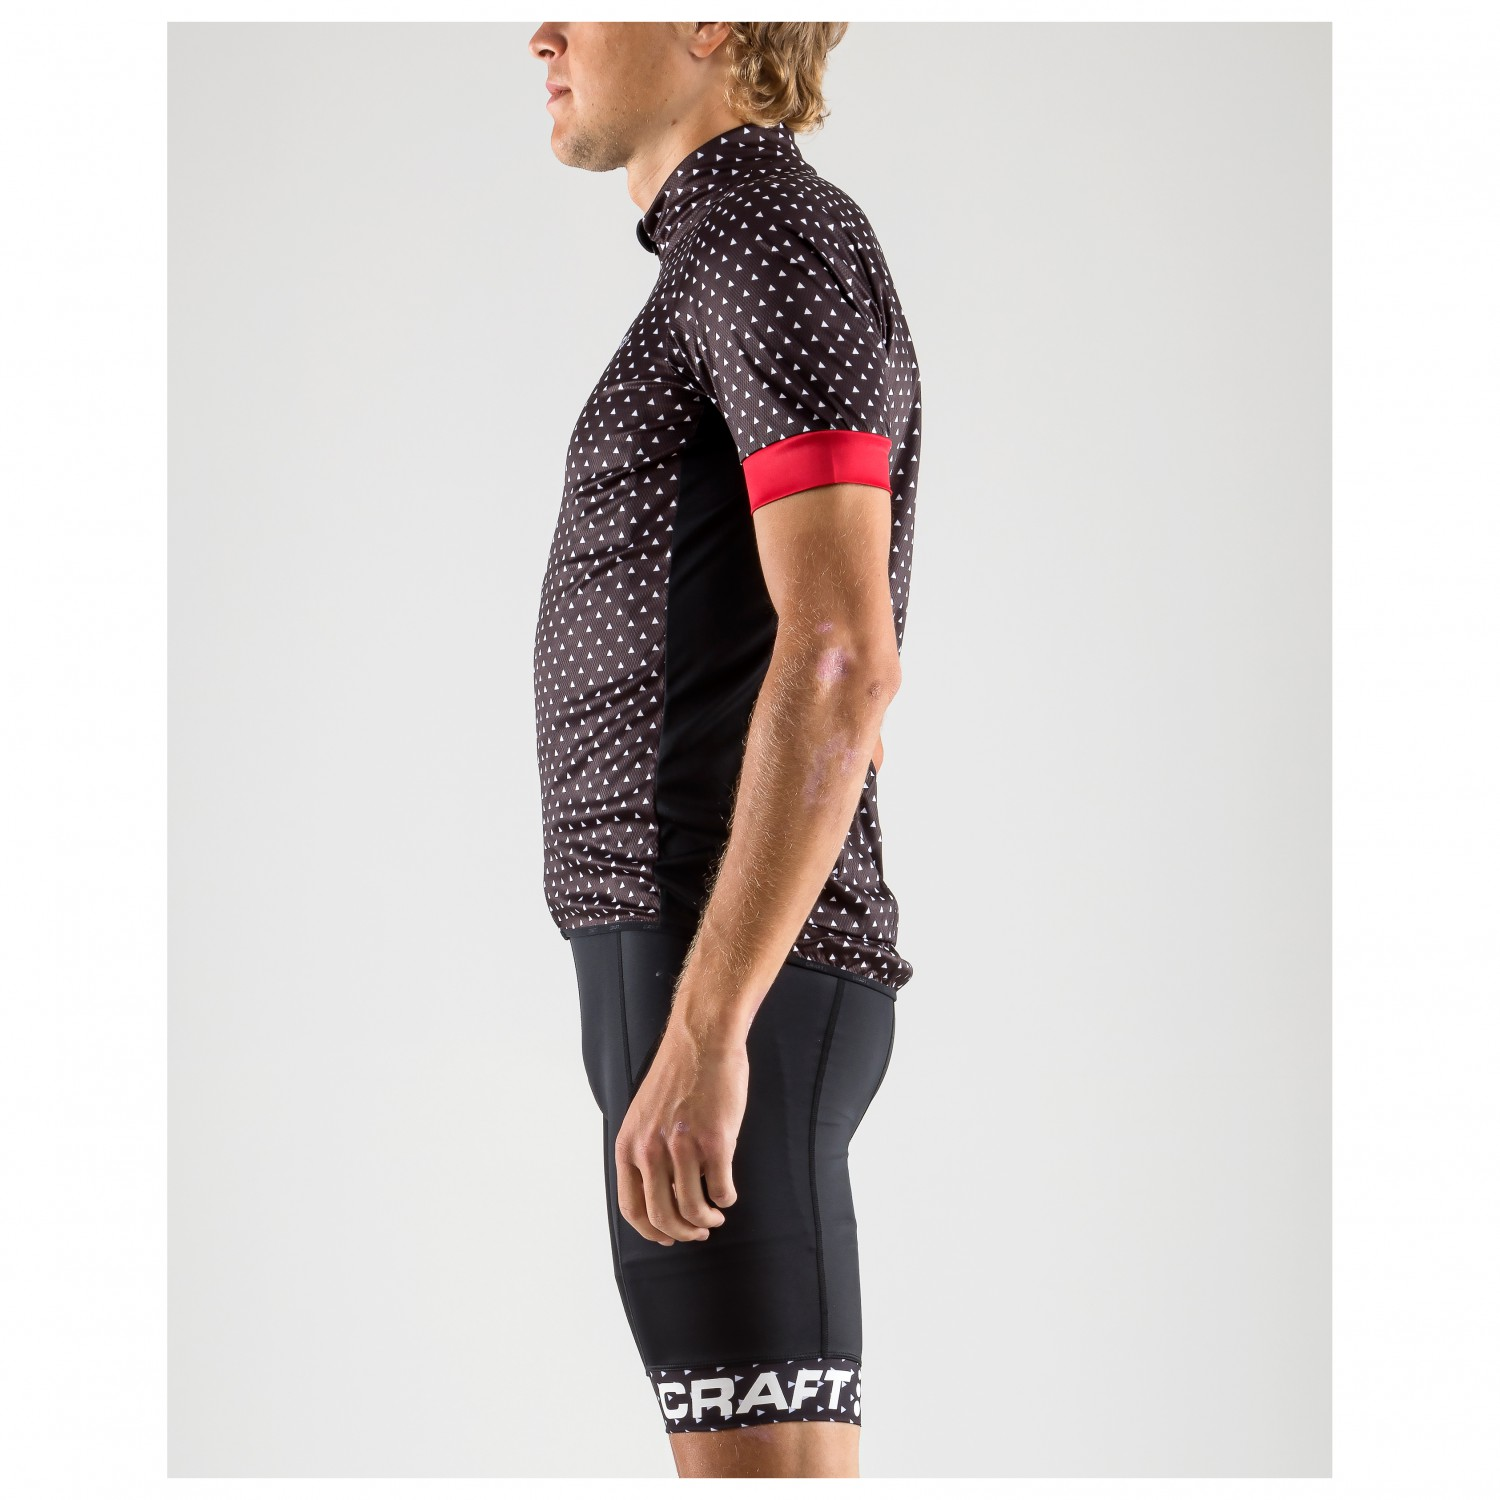 ... Craft - Reel Graphic Jersey - Cycling jersey ... 02fc53f5d